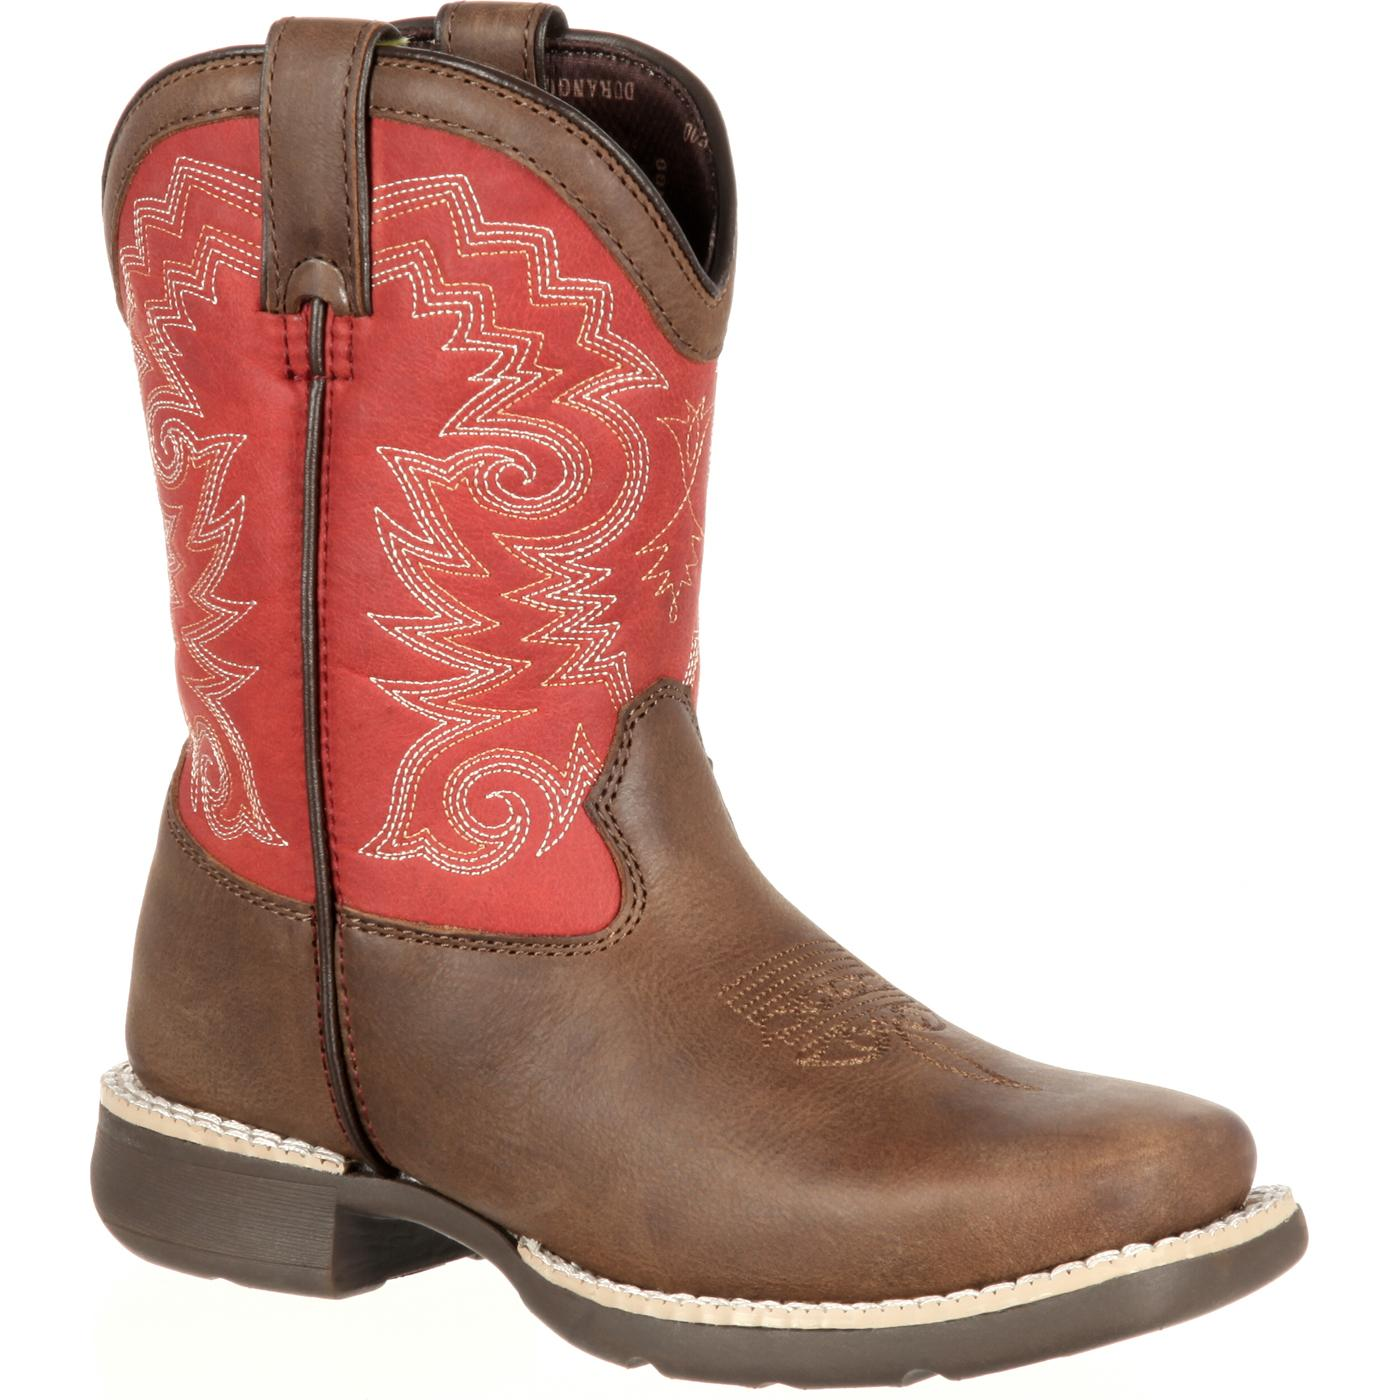 Lil39 Durango Youth Brown Red Square Toe Western Boots